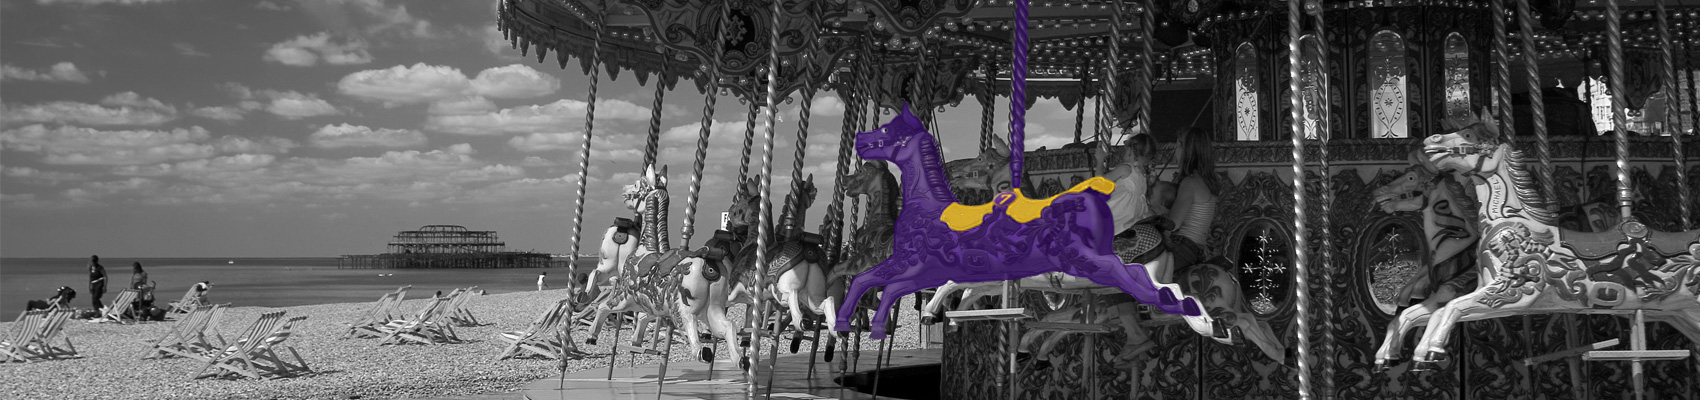 Carousel Brighton - West Pier